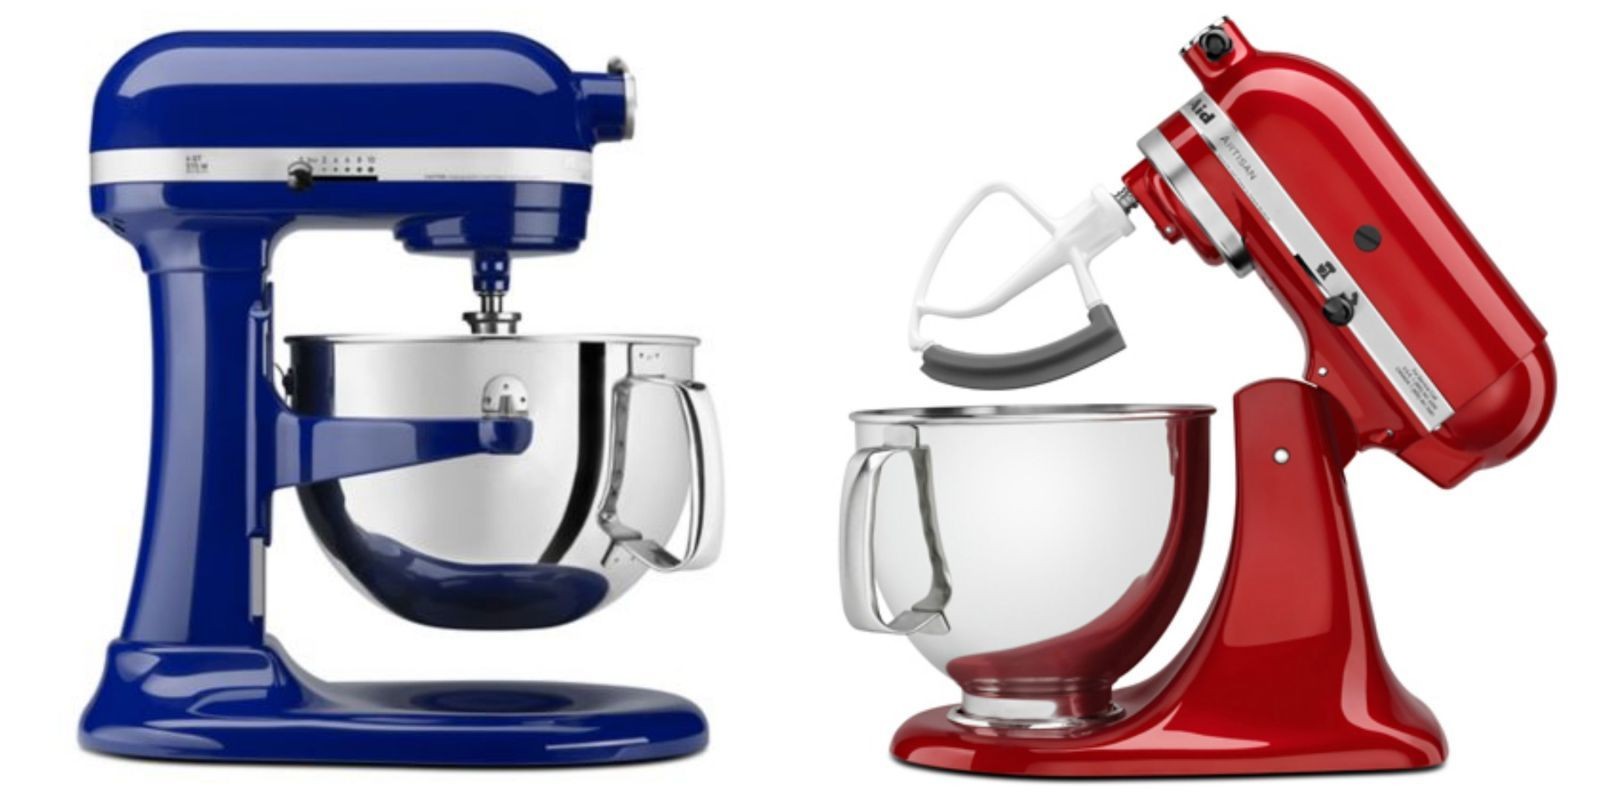 kitchenaid juicer and sauce attachment for all home stand mixers